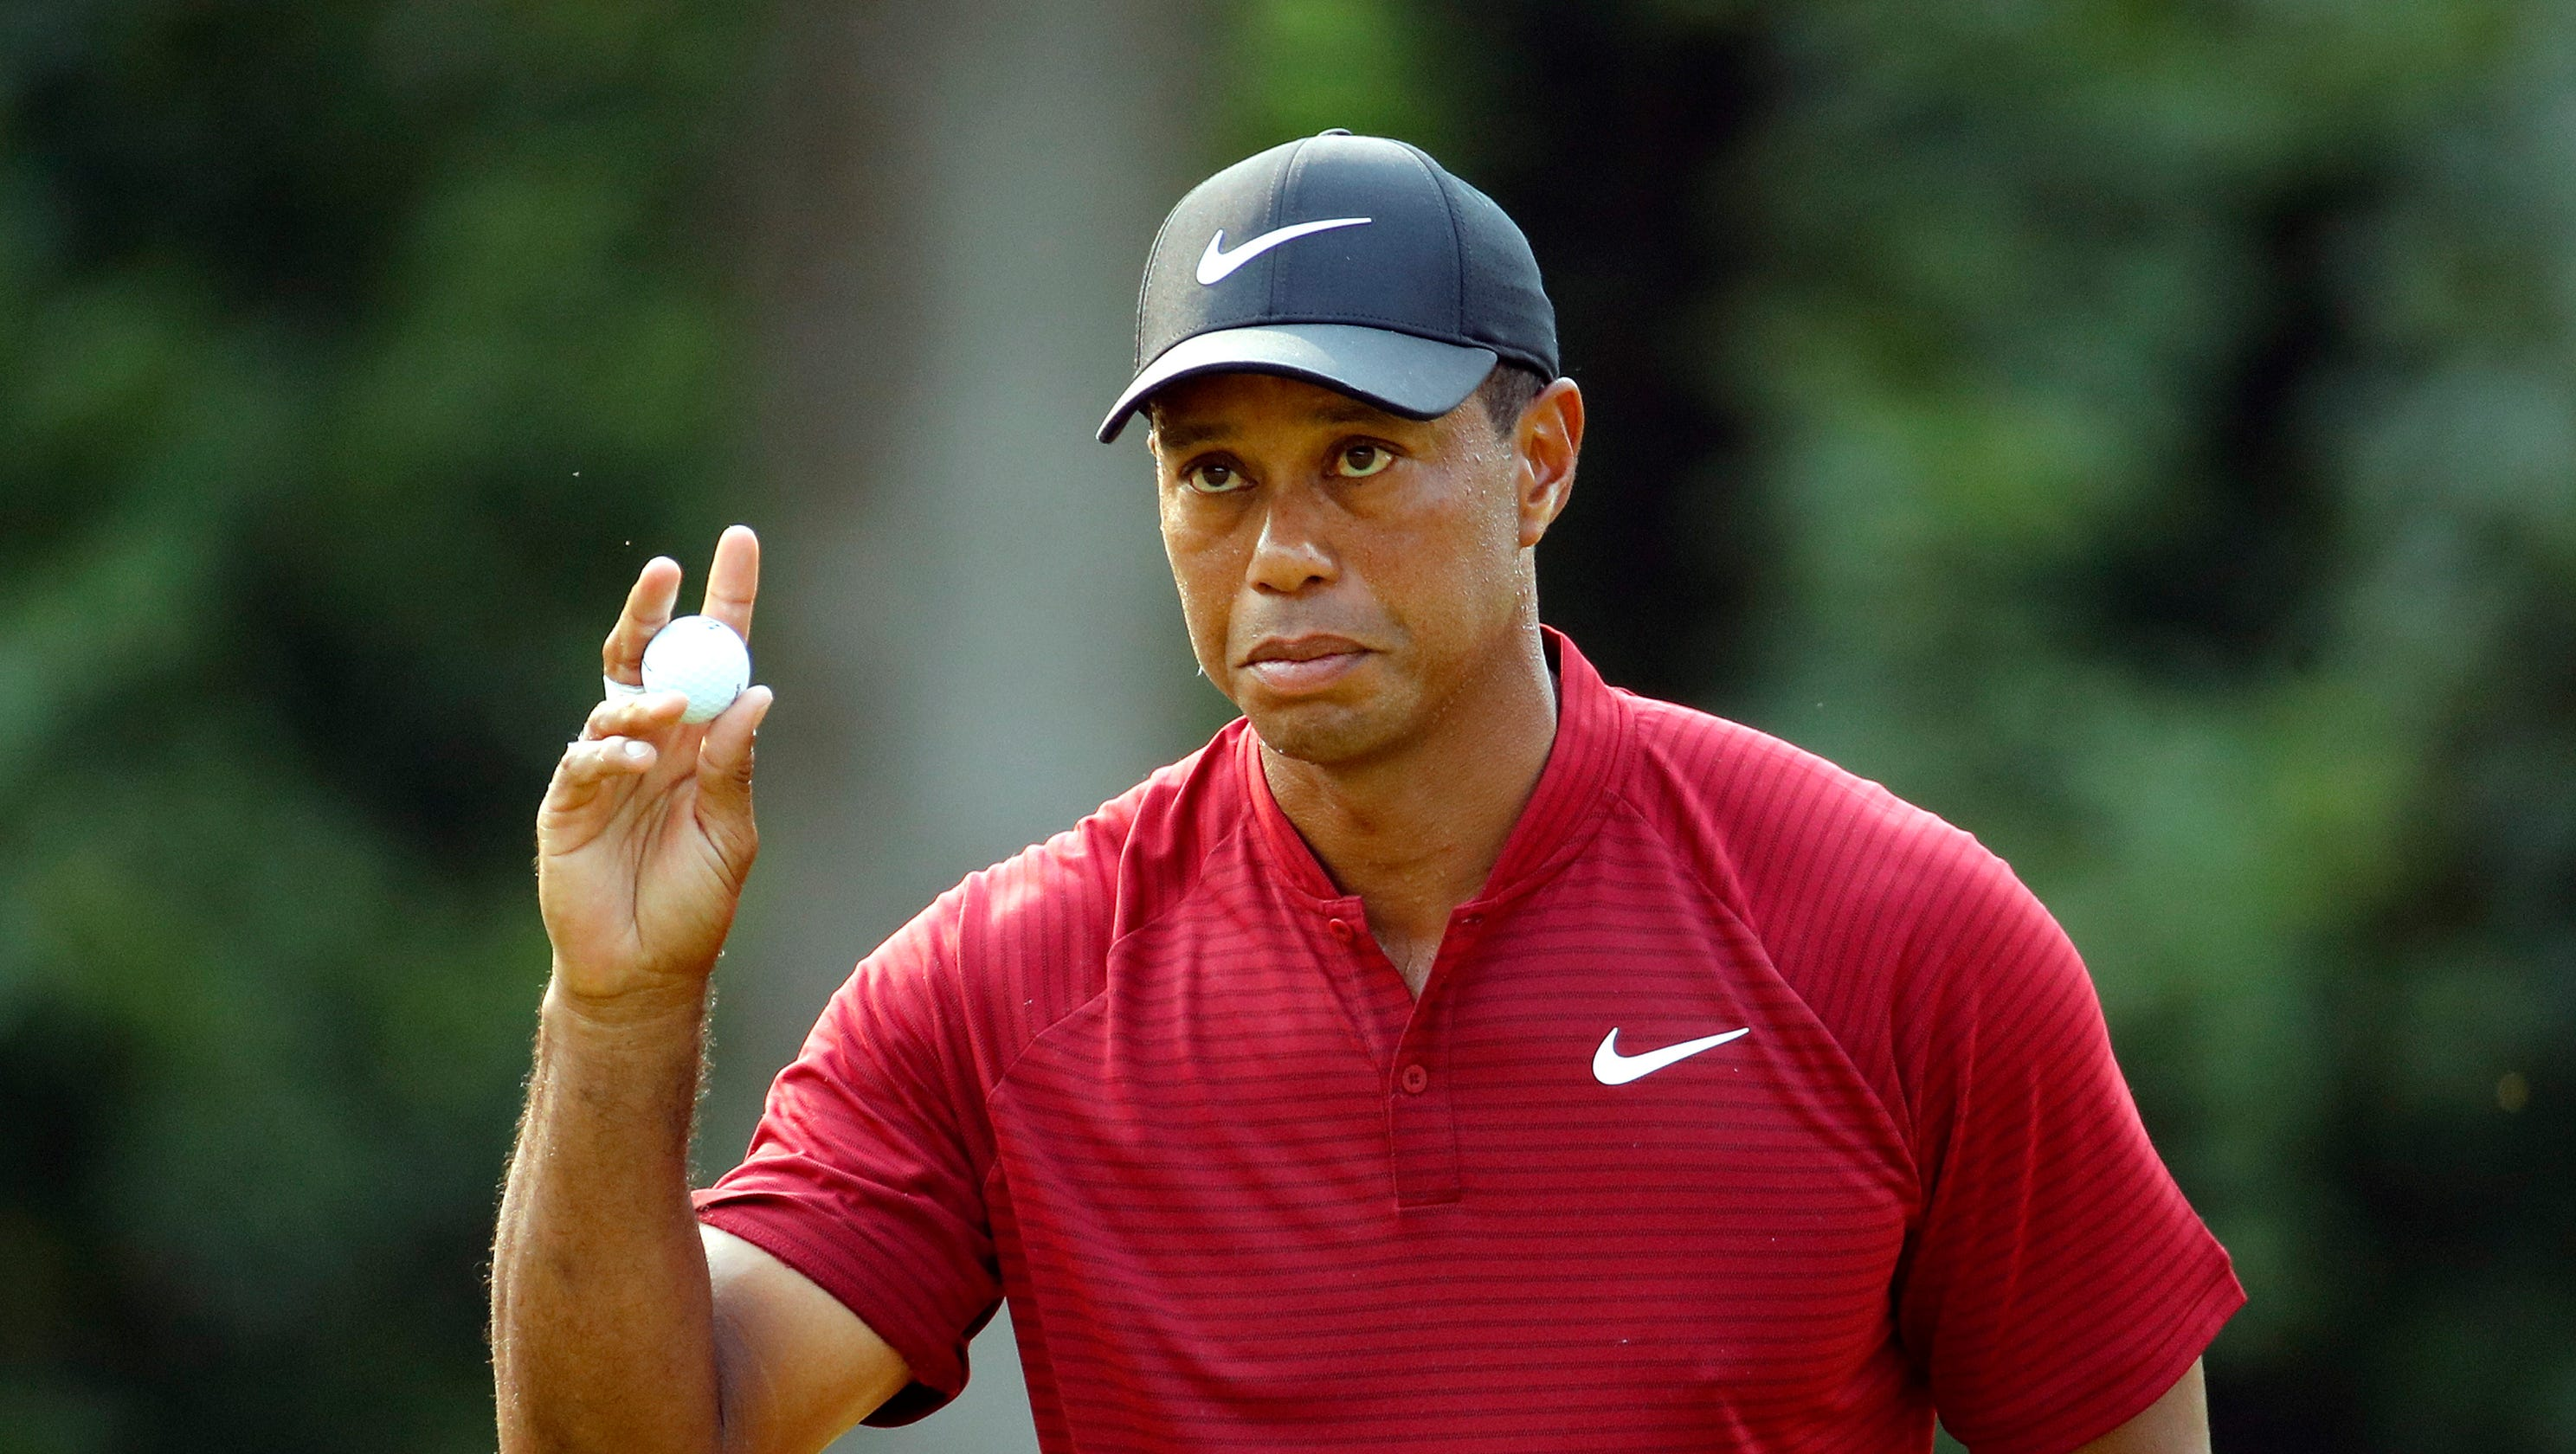 cd293367 PGA The Northern Trust NJ: What to watch, Tiger Woods' comeback